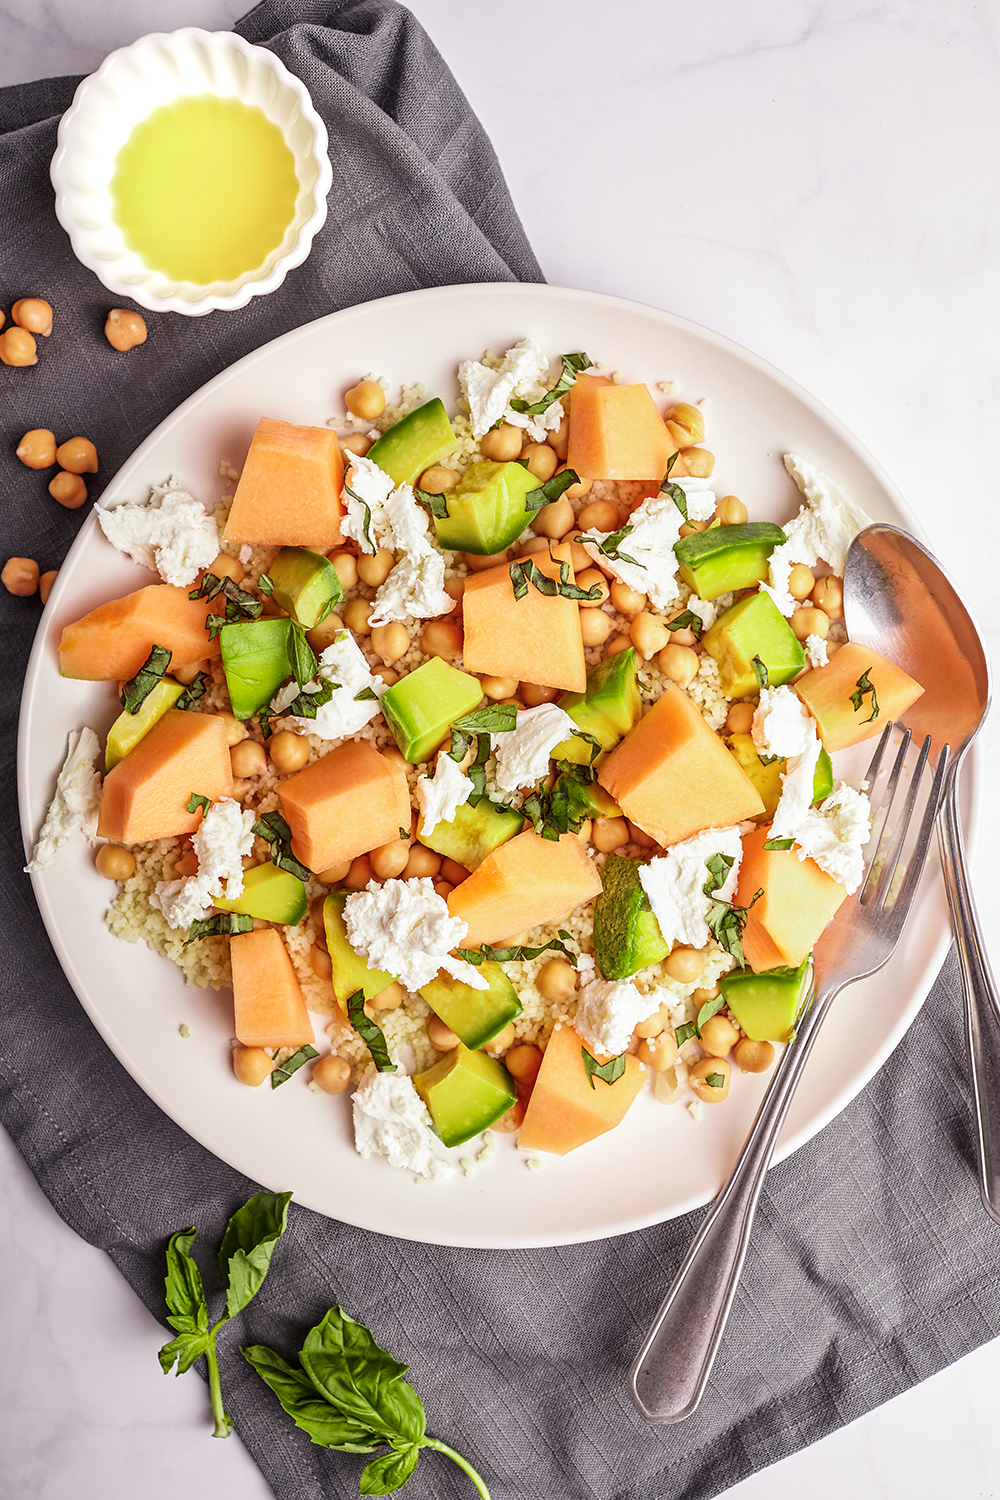 Melon couscous salad with burrata